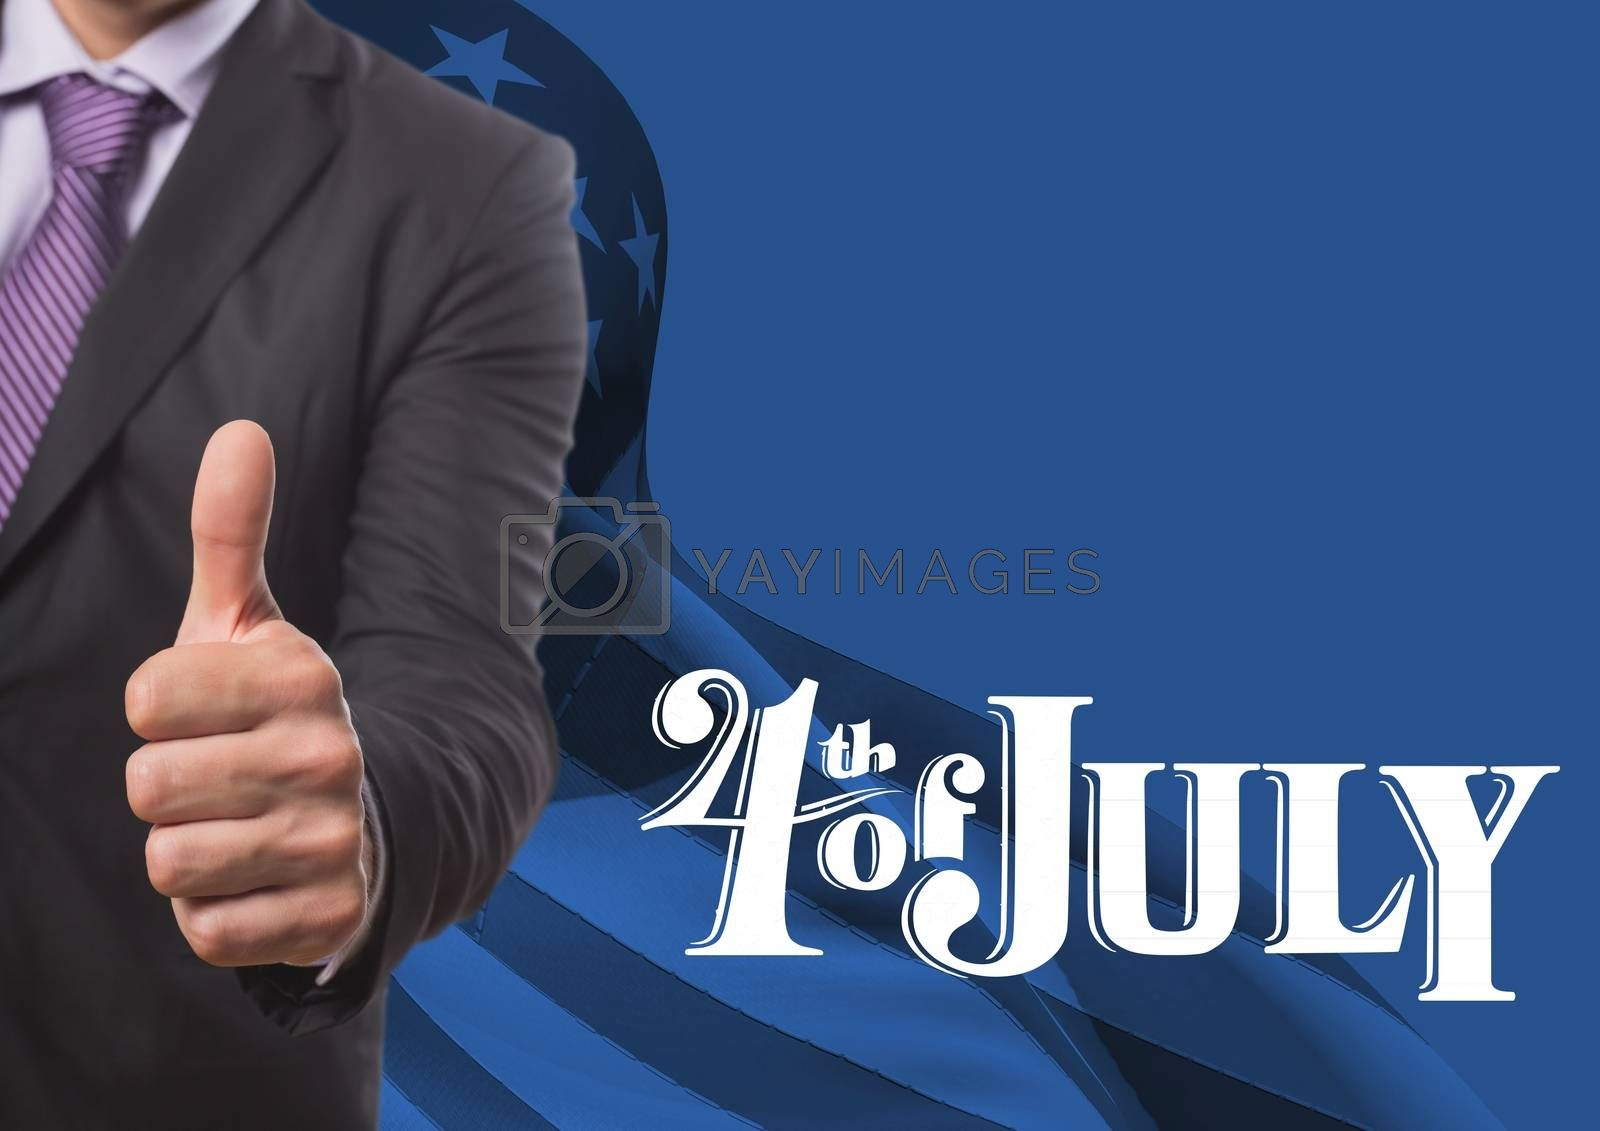 Royalty free image of Business man with thumb up for the 4th of july by Wavebreakmedia